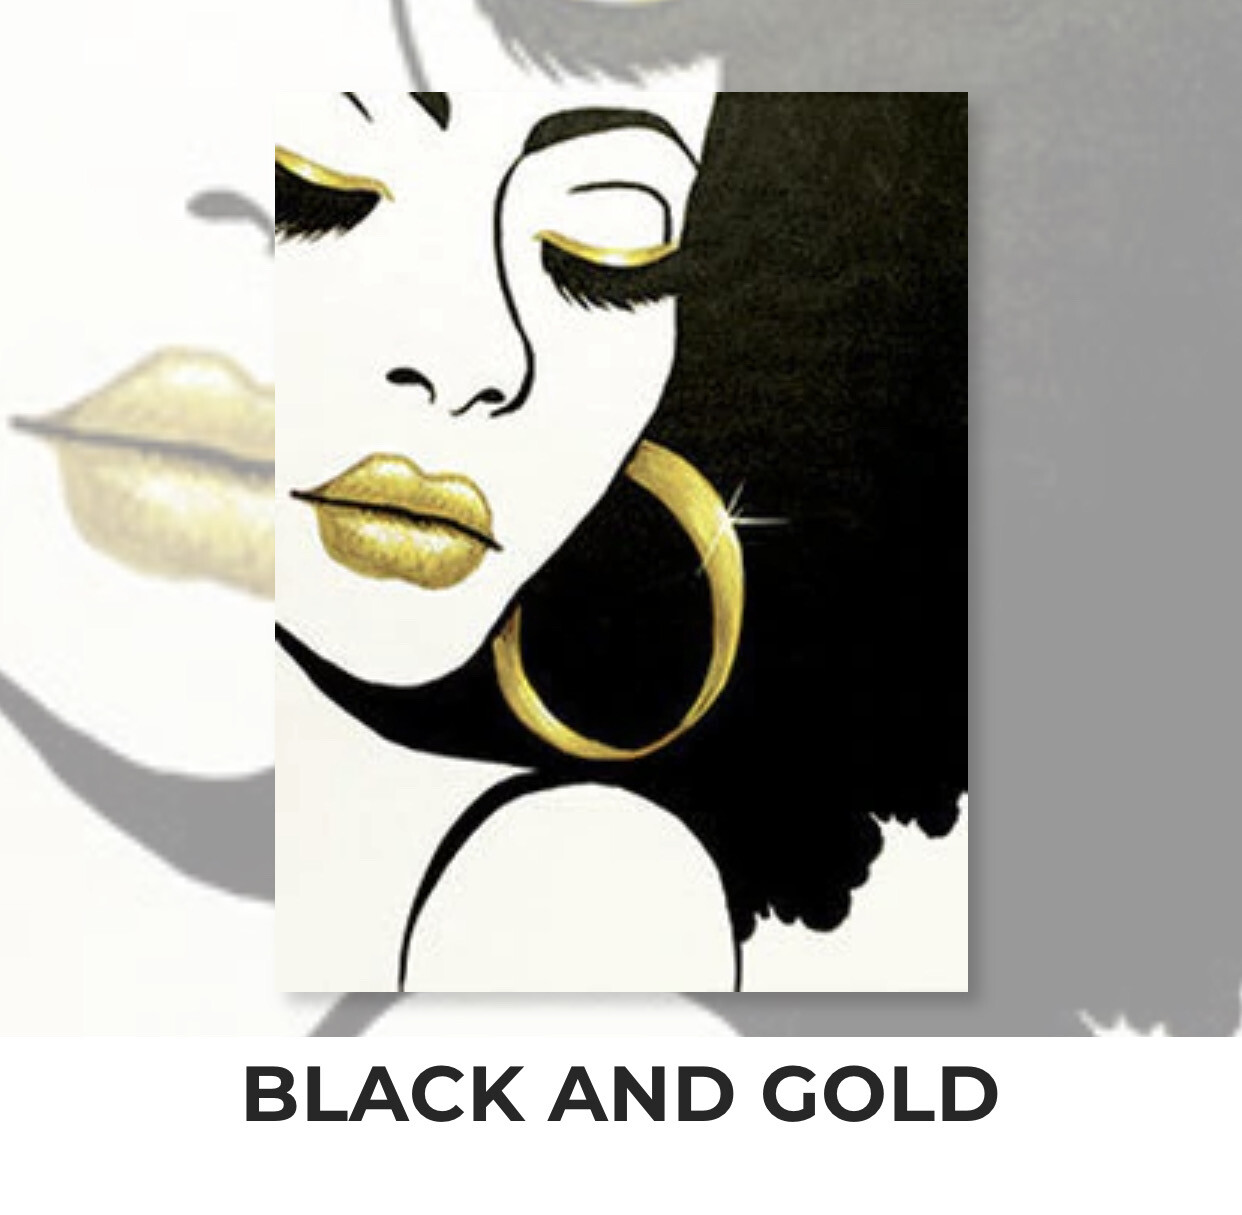 Black And Gold ADULT Acrylic Paint On Canvas DIY Art Kit - 3 Week Special Order